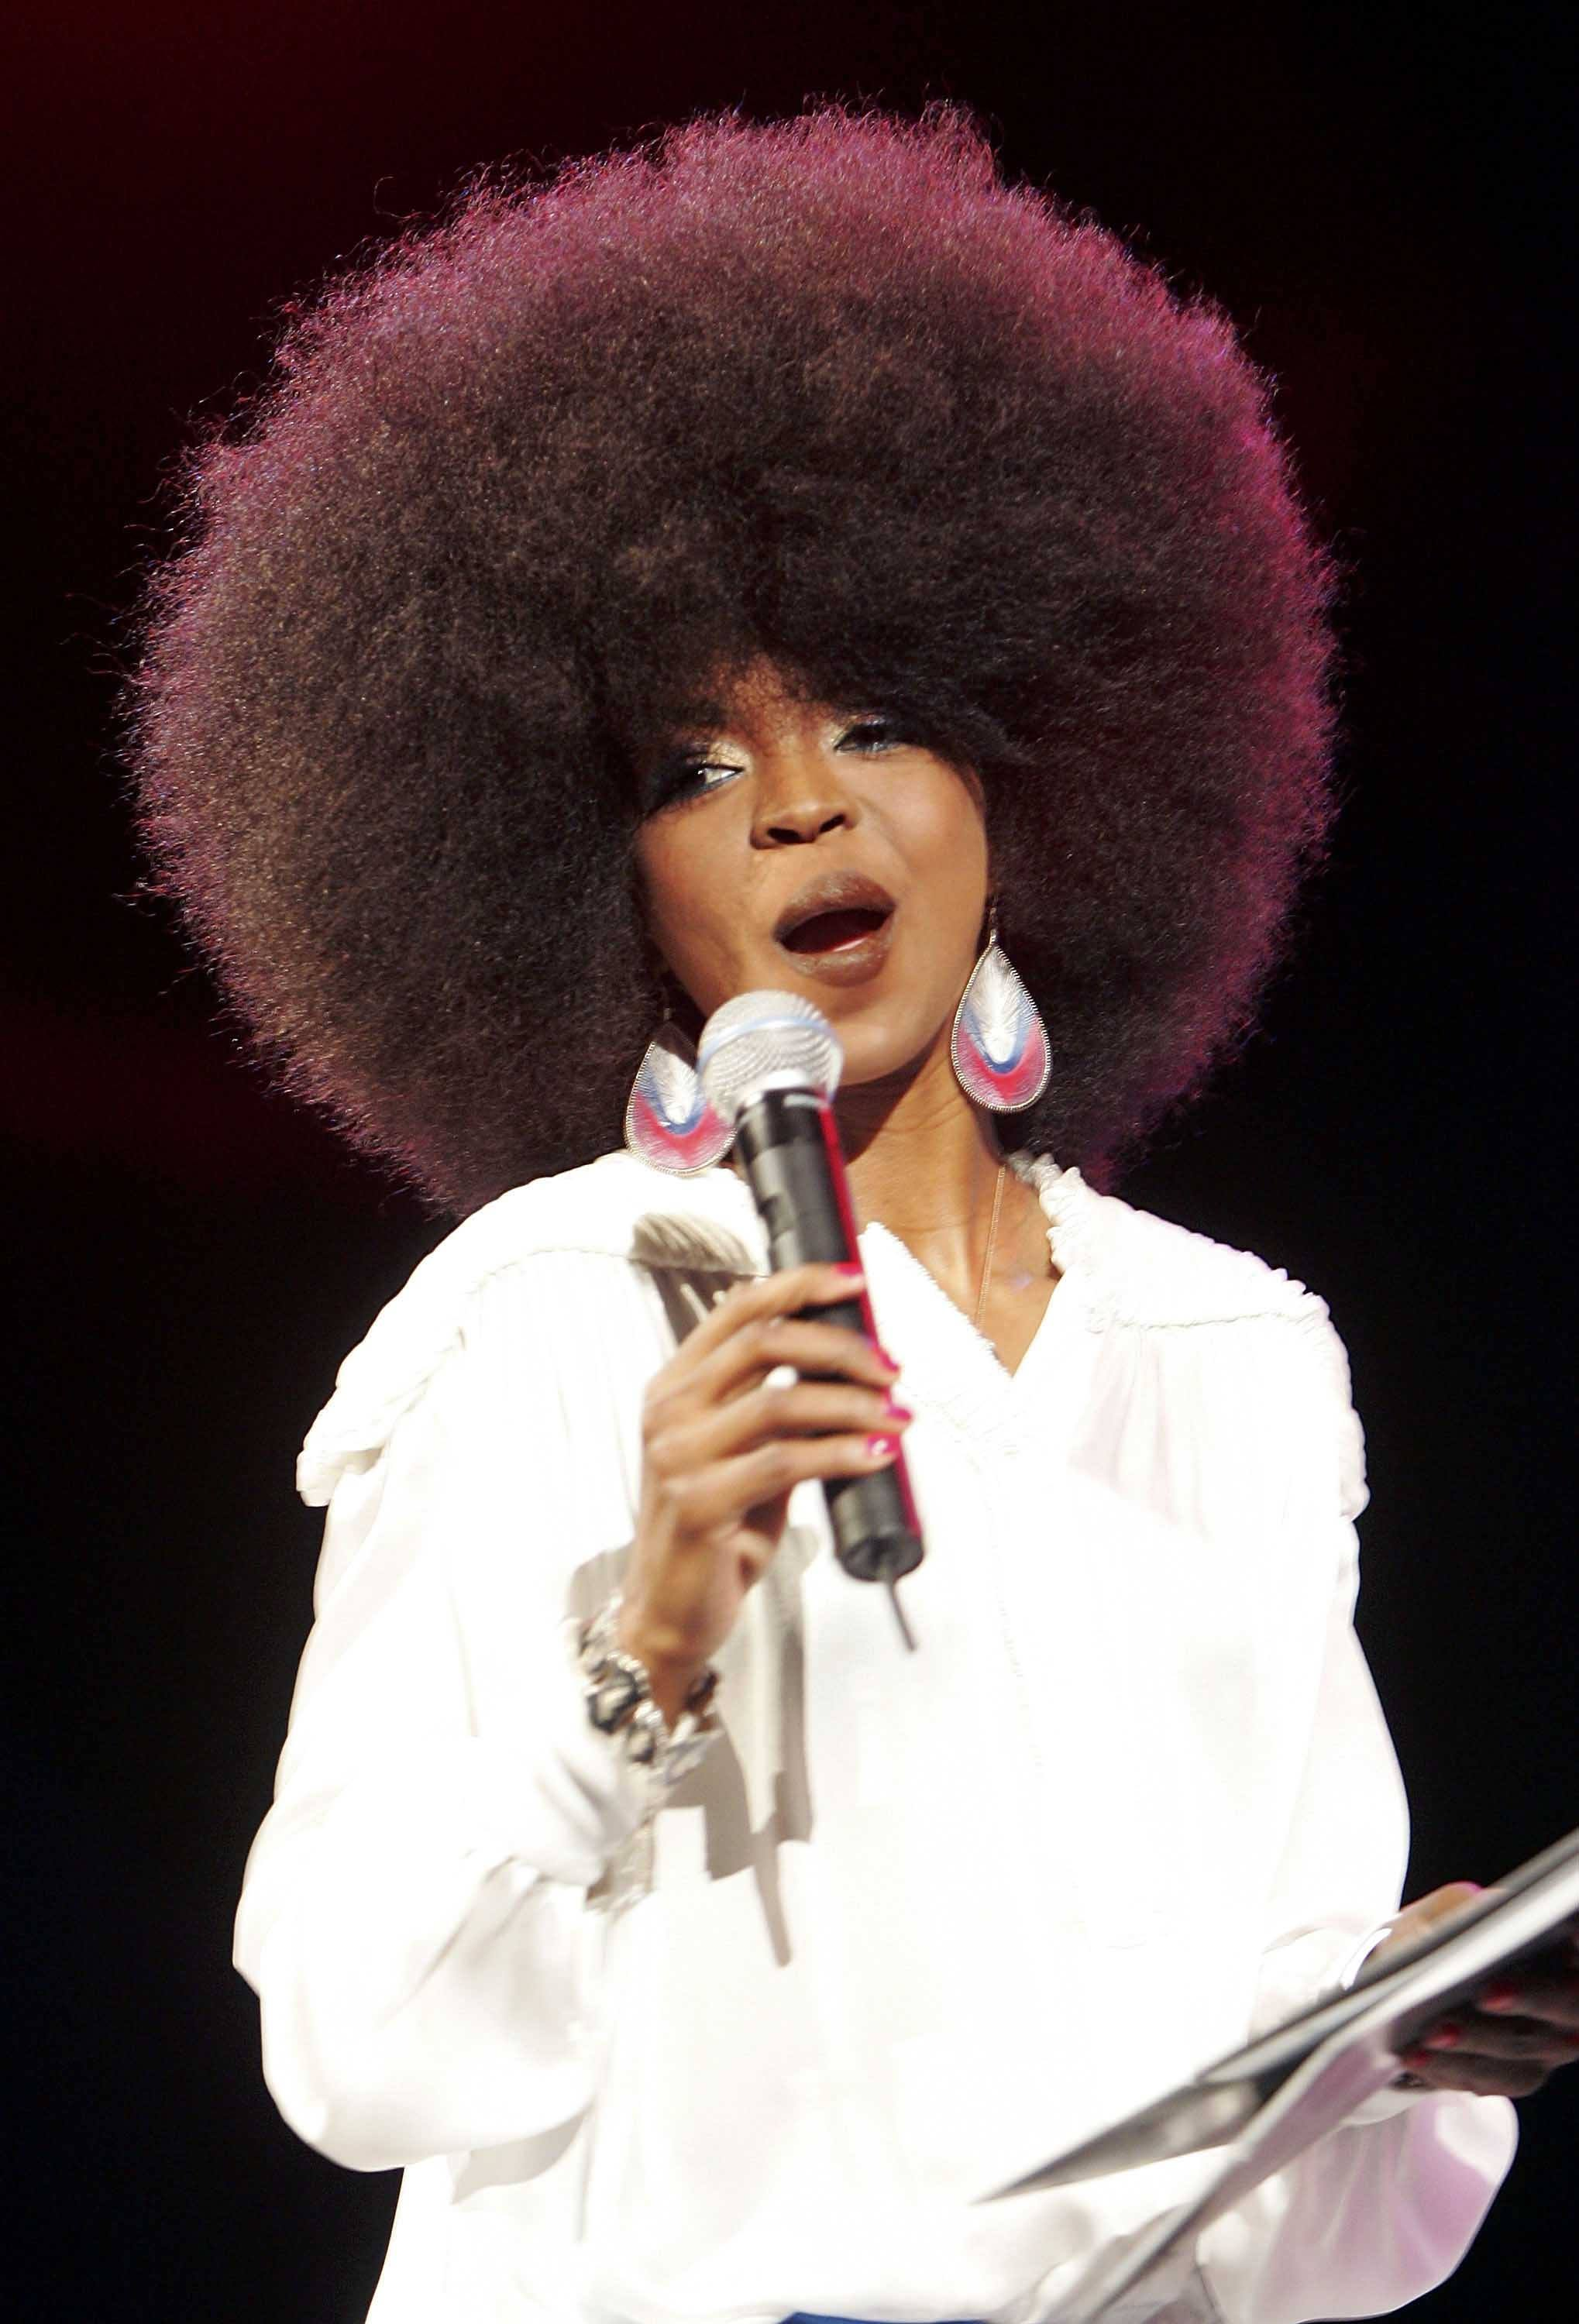 Black history month hairstyles: Close up shot of Lauryn Hill with a big afro, wearing big earrings and posing on the stage